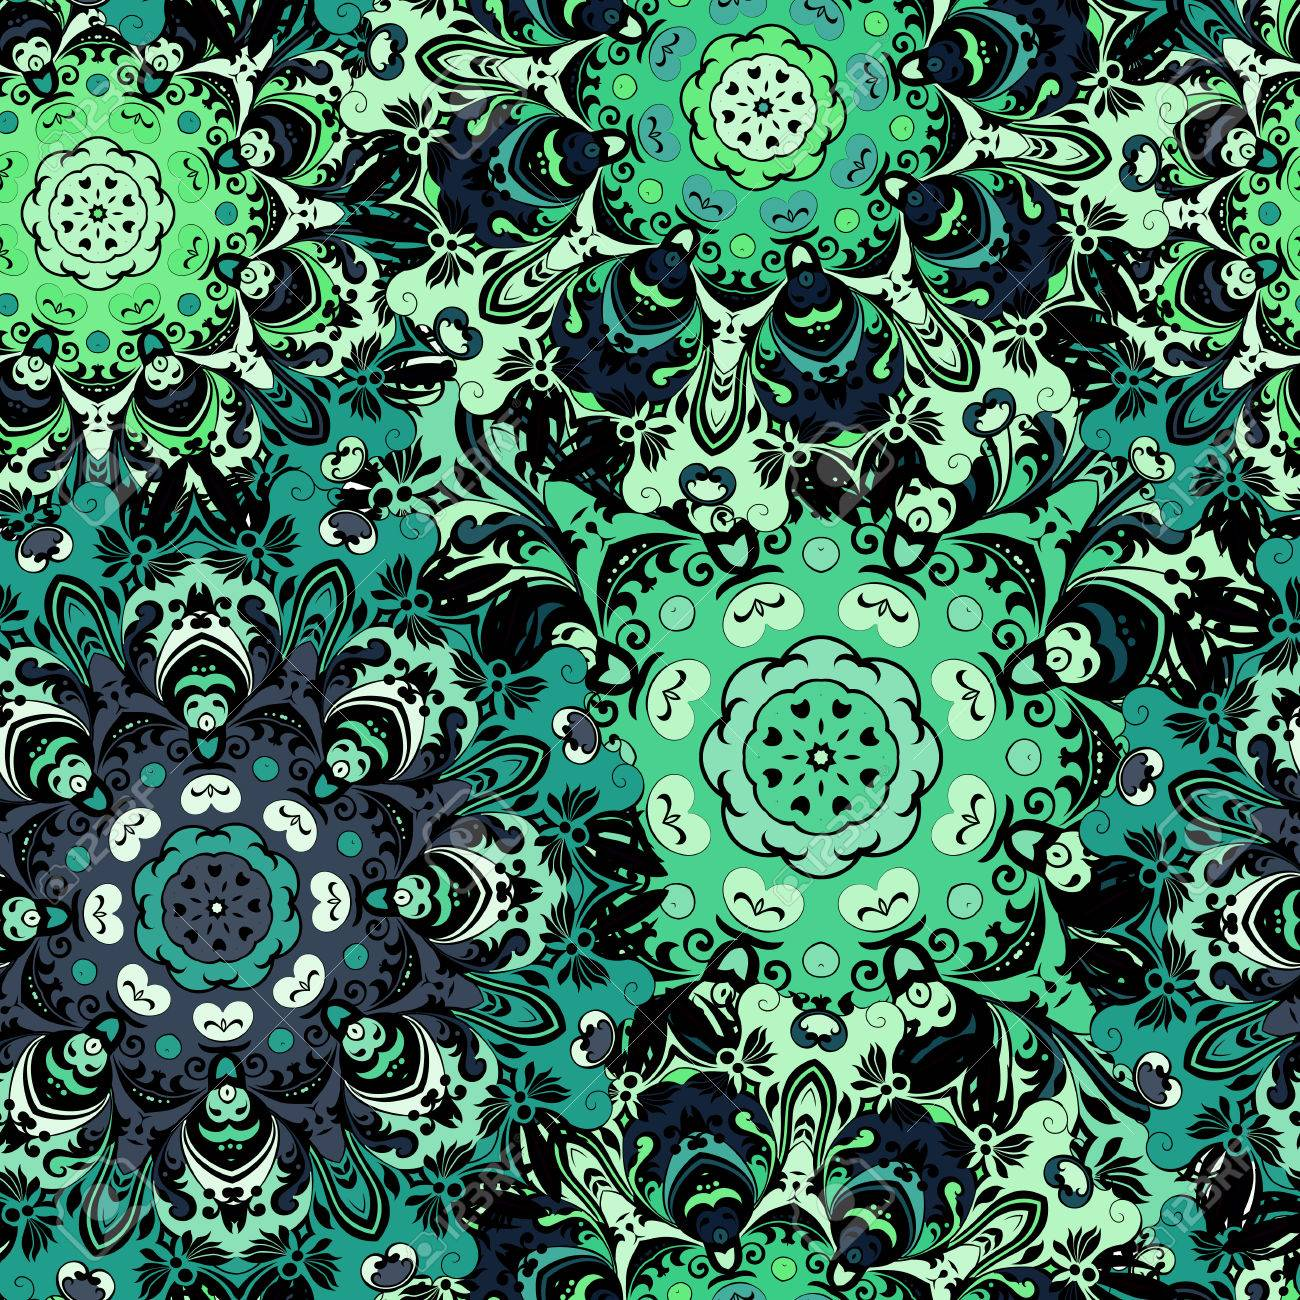 Vintage oriental seamless pattern in green colors. Indian, arabic, ottoman, turkish, japanese, chinese floral motif for background or front-side. Eastern retro ornament for wrapping or textil. Vector art. - 60510575